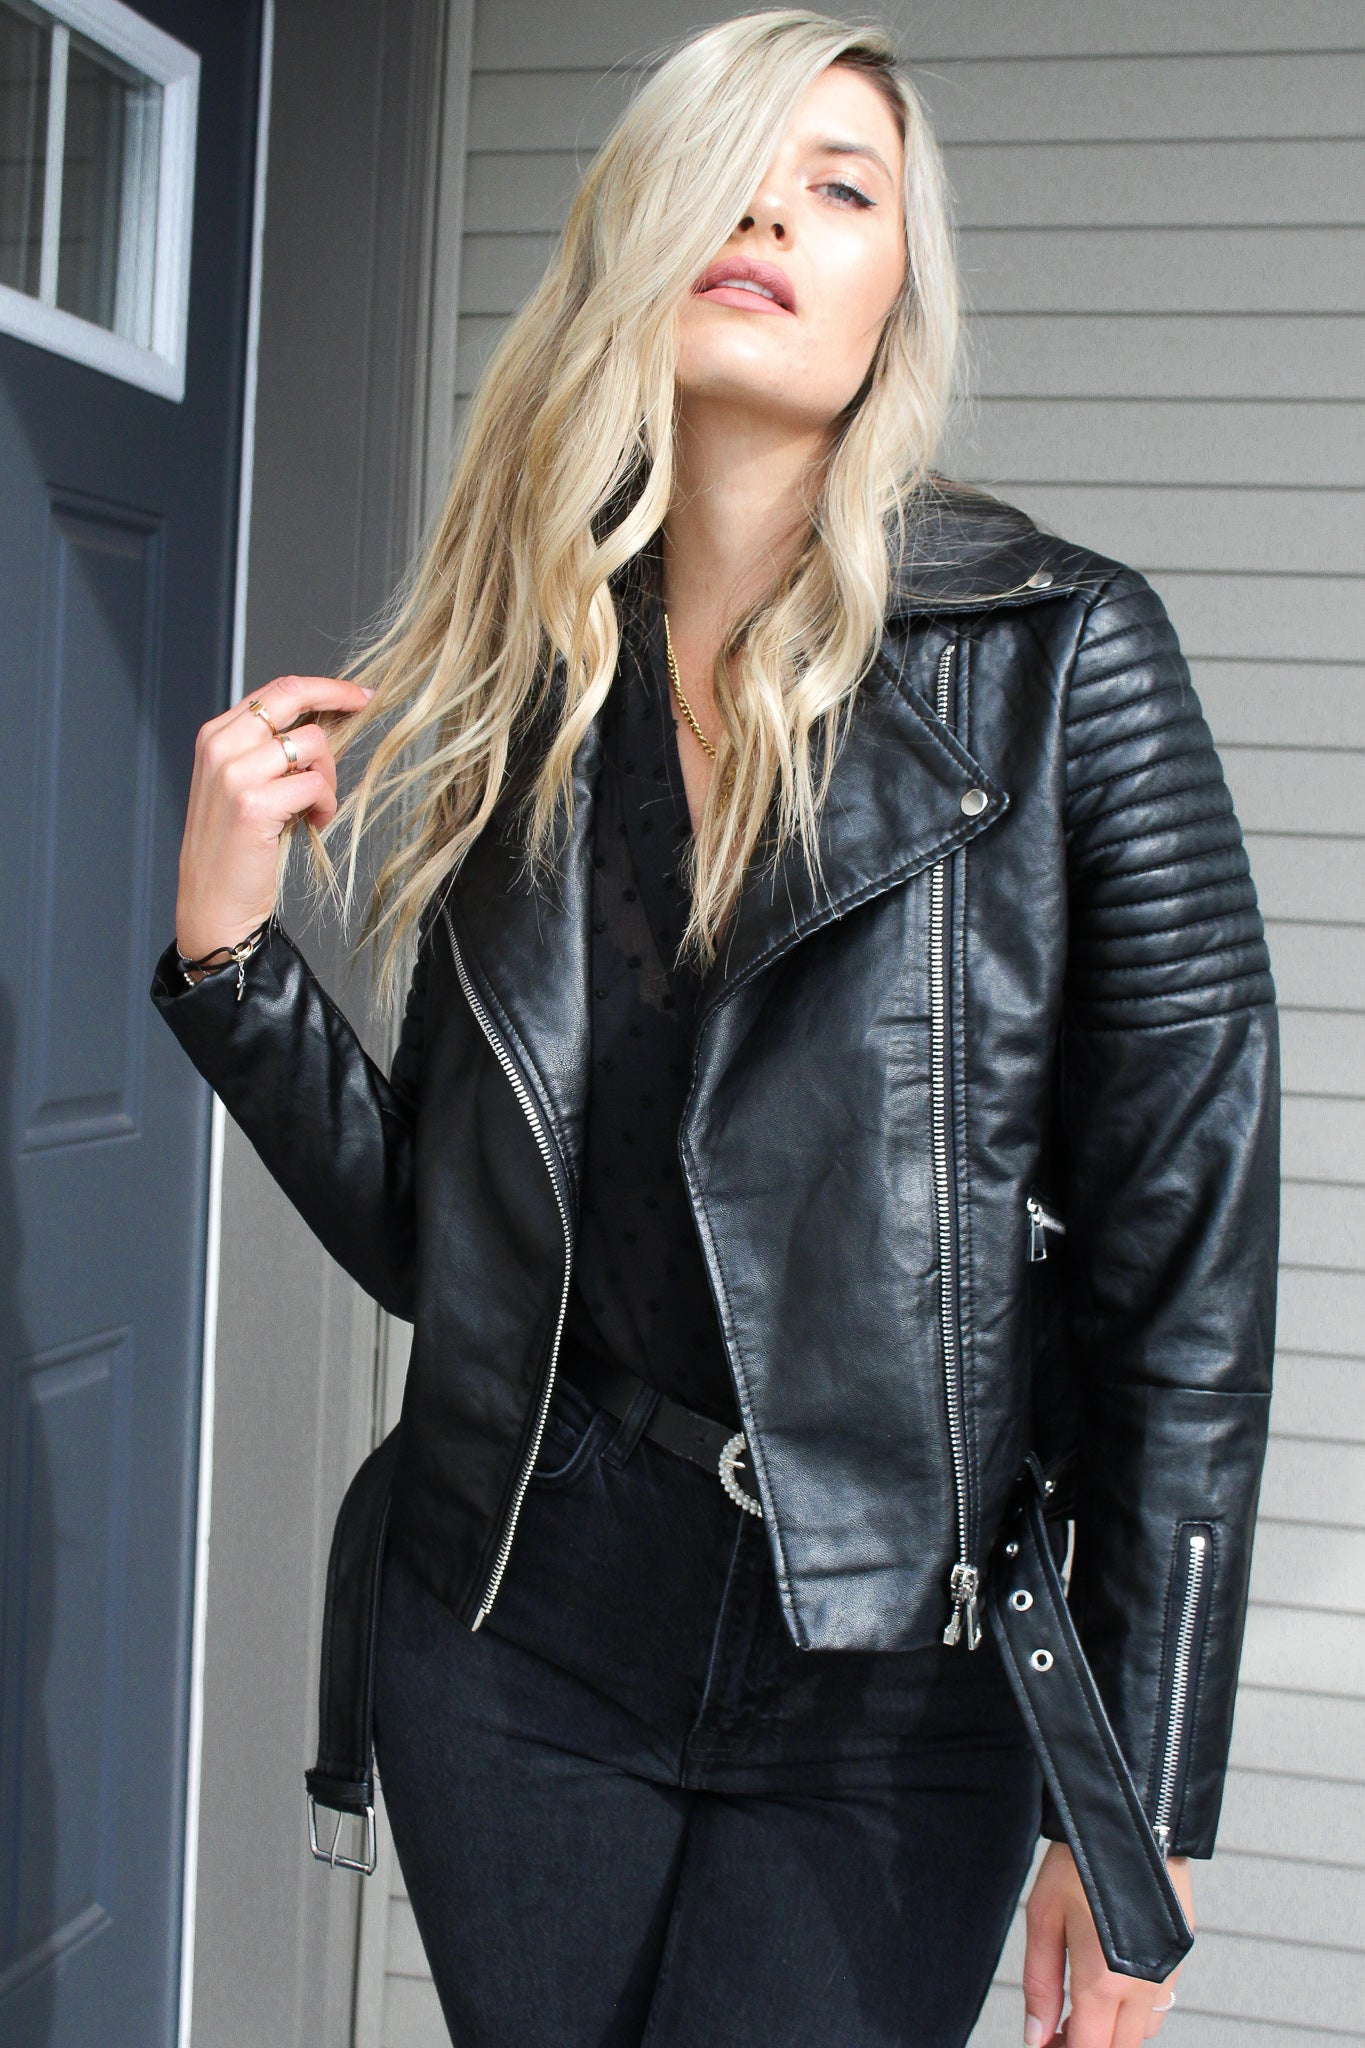 Highway 1 Vegan Leather Jacket - Finding July